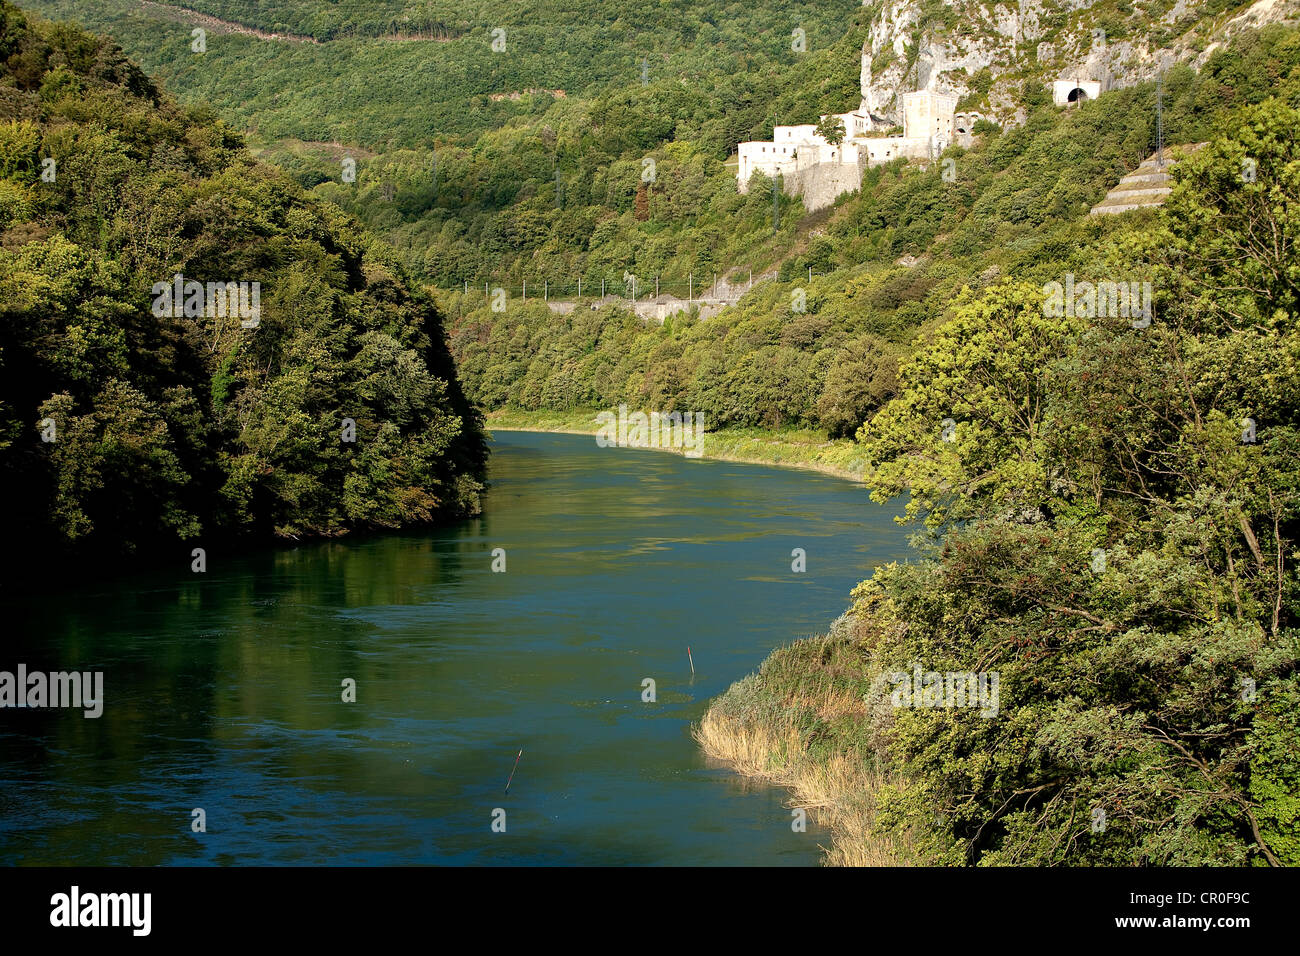 France, Ain, site of Defile de L'Ecluse and fortifications of Fort L'Ecluse - Stock Image